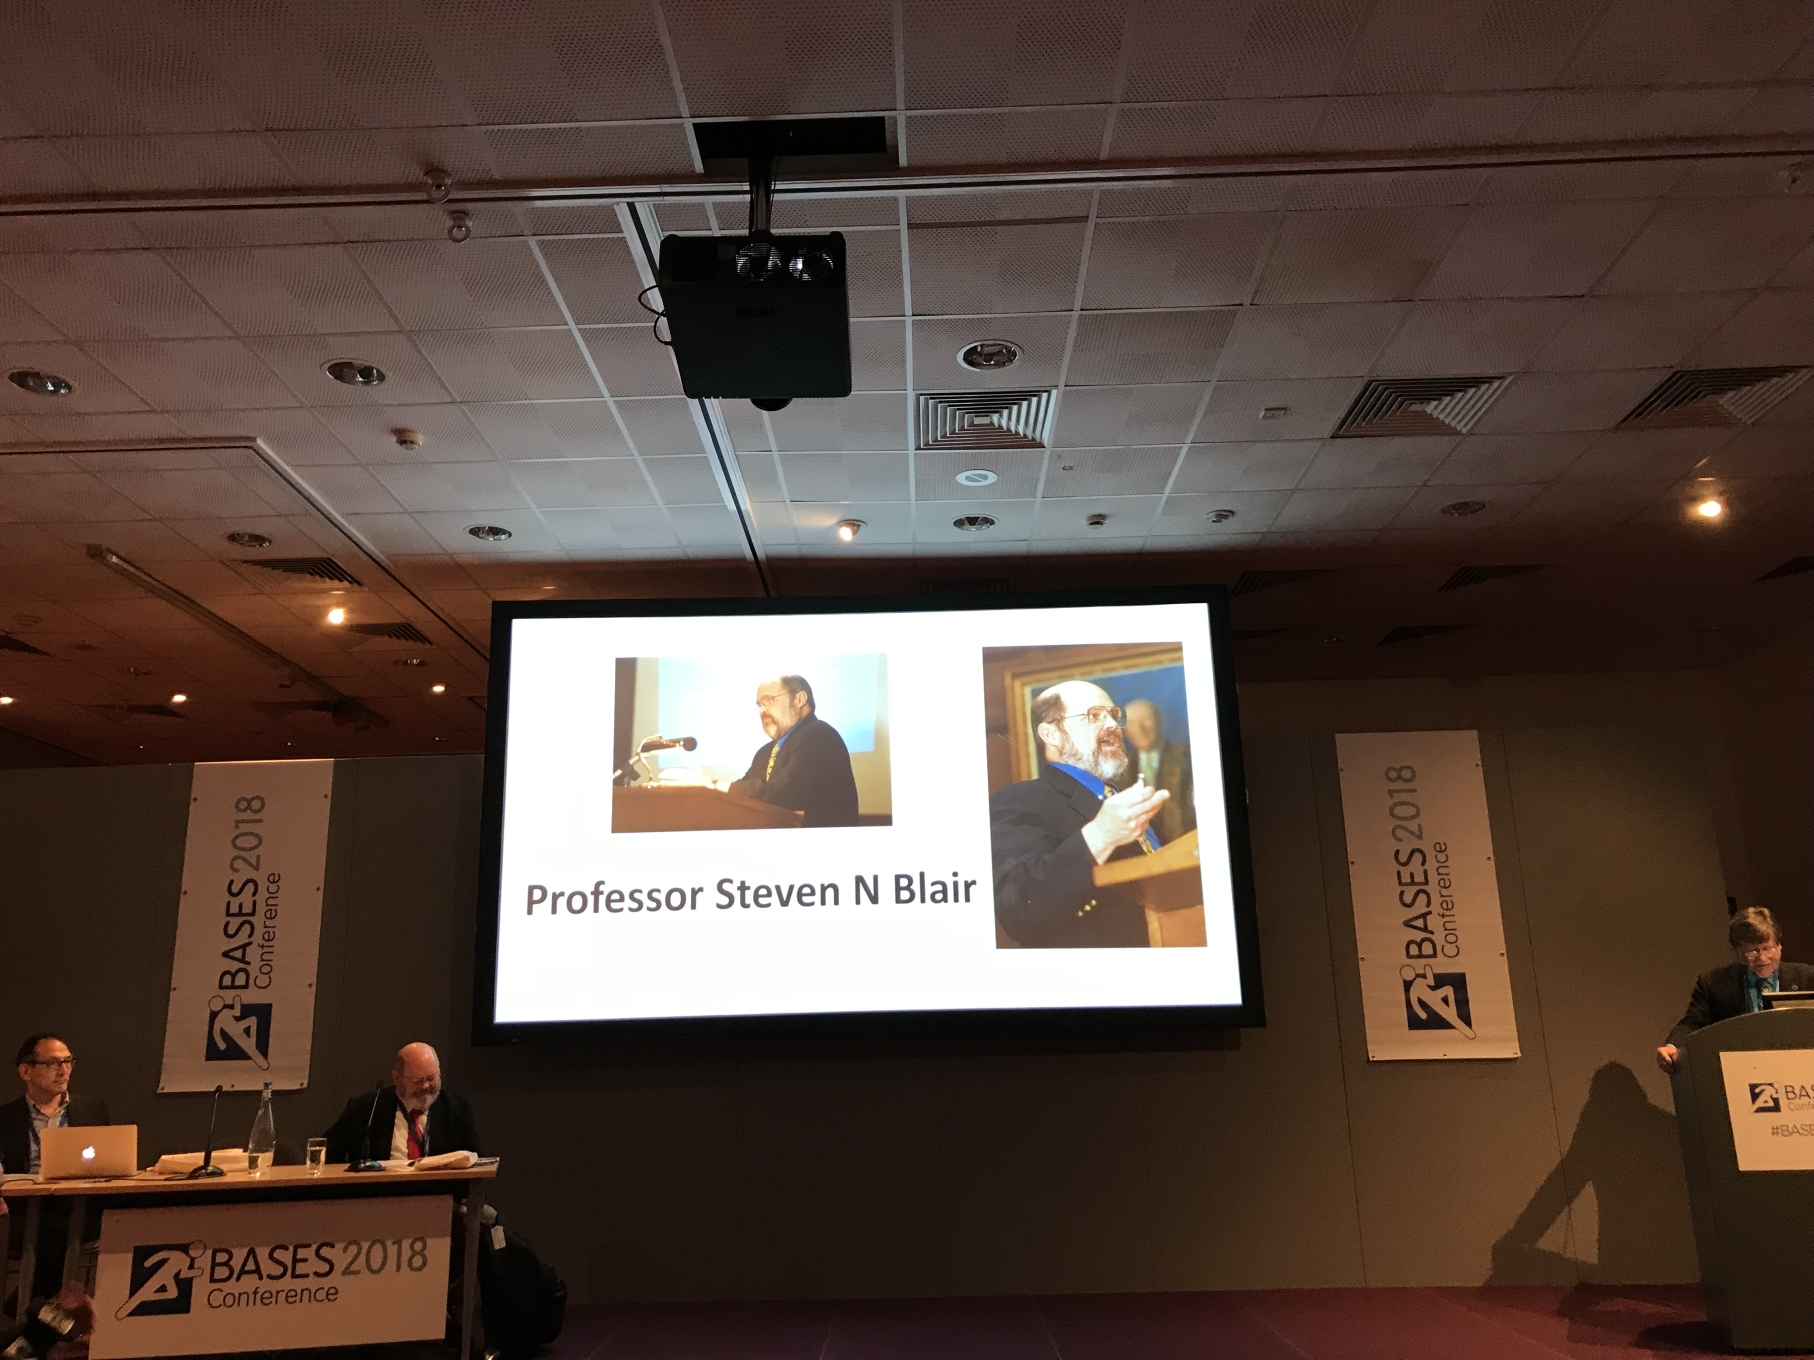 Professor Steven Blair at the BASES Conference 2018